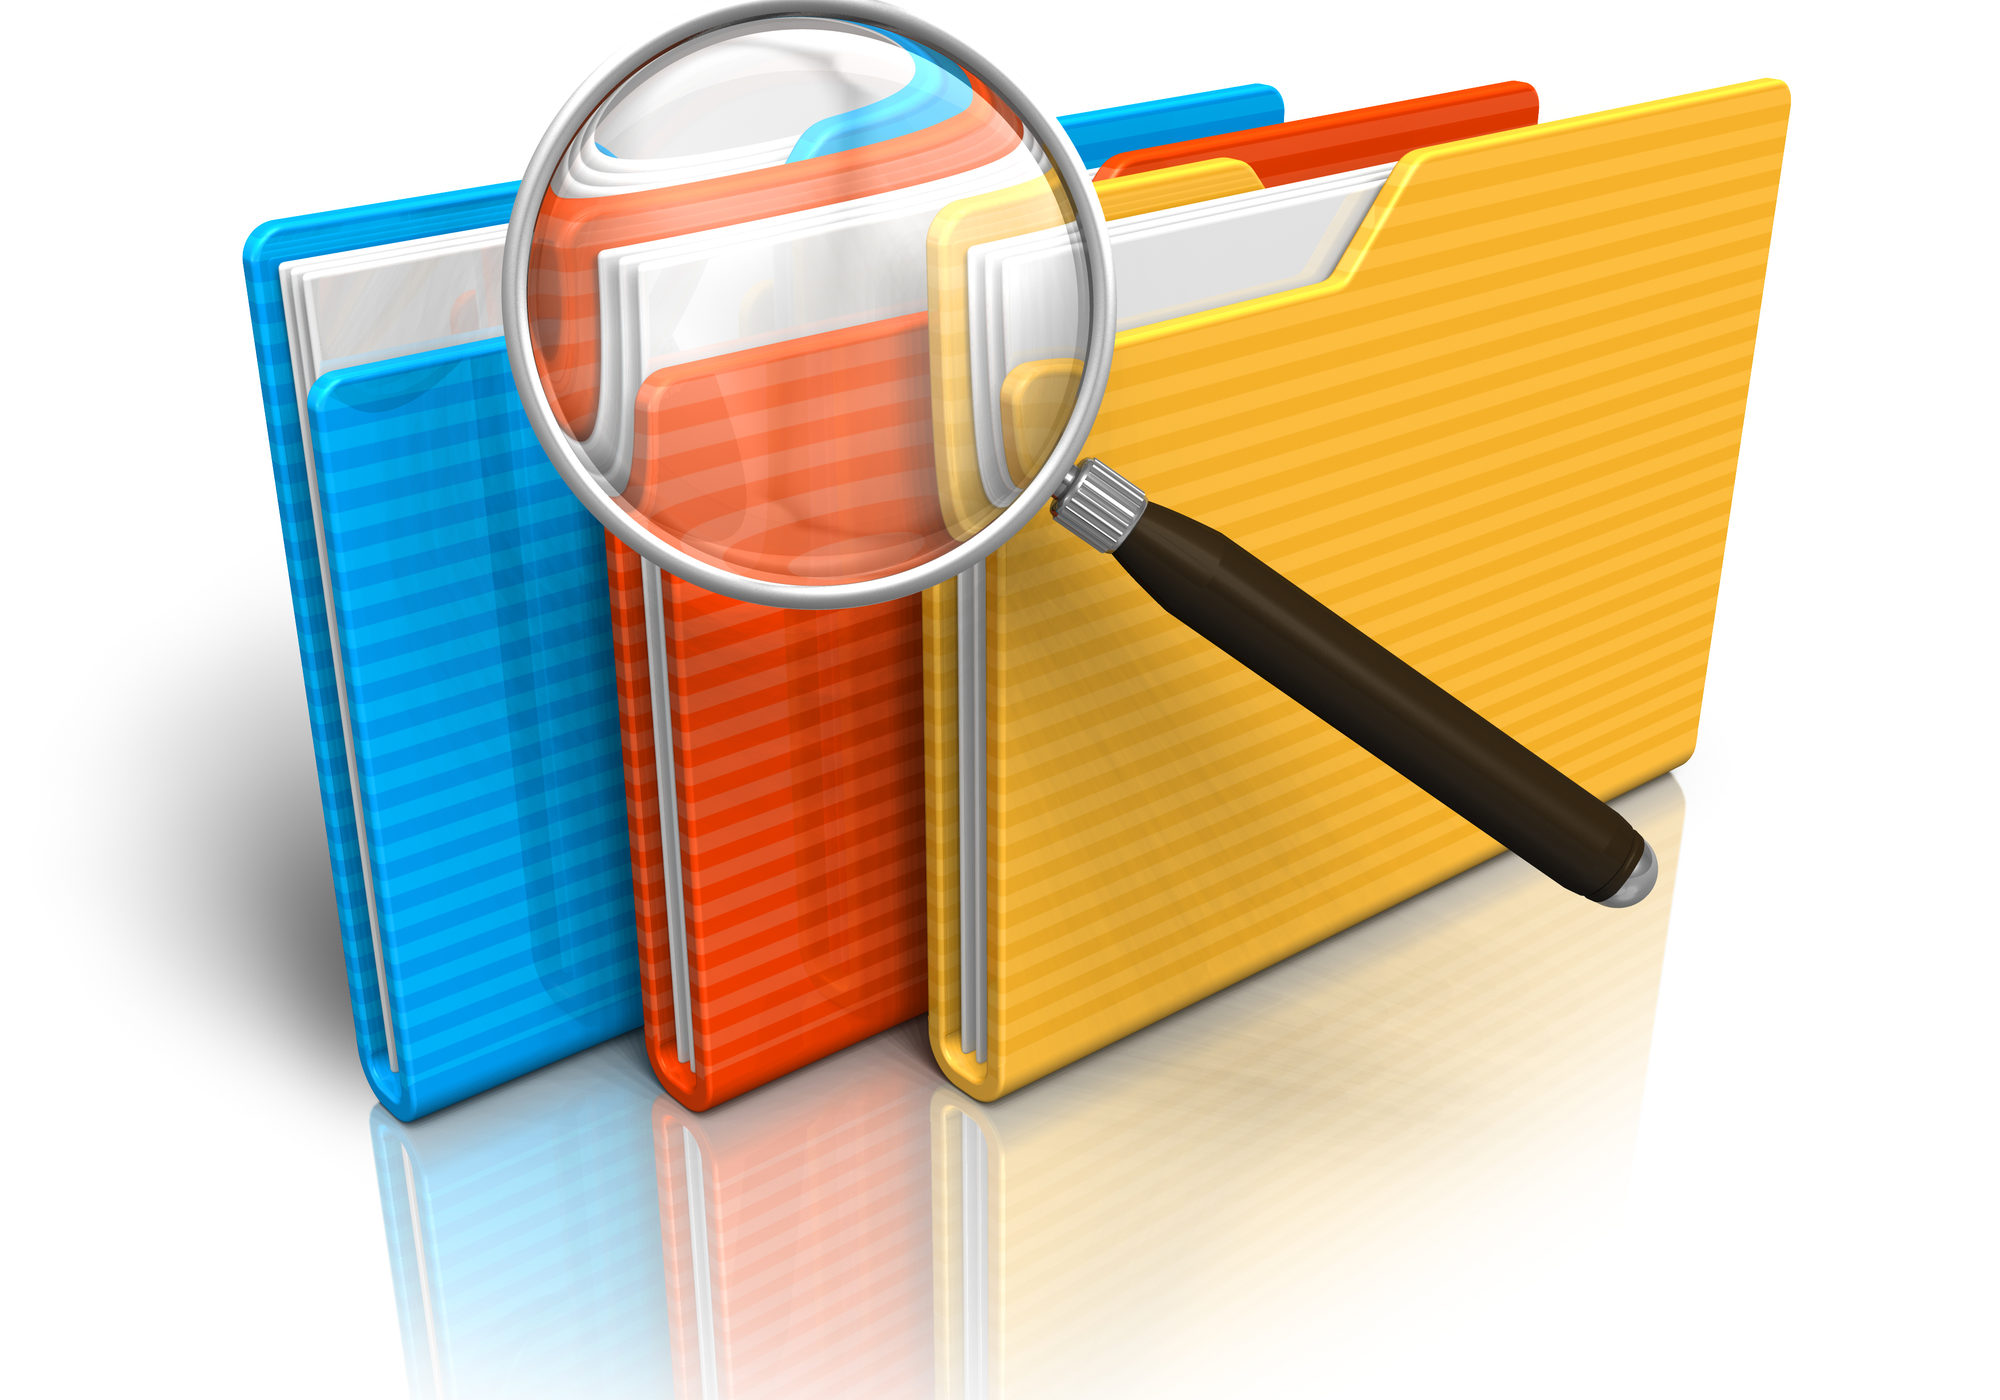 power it company case study and system Loading sending searching.